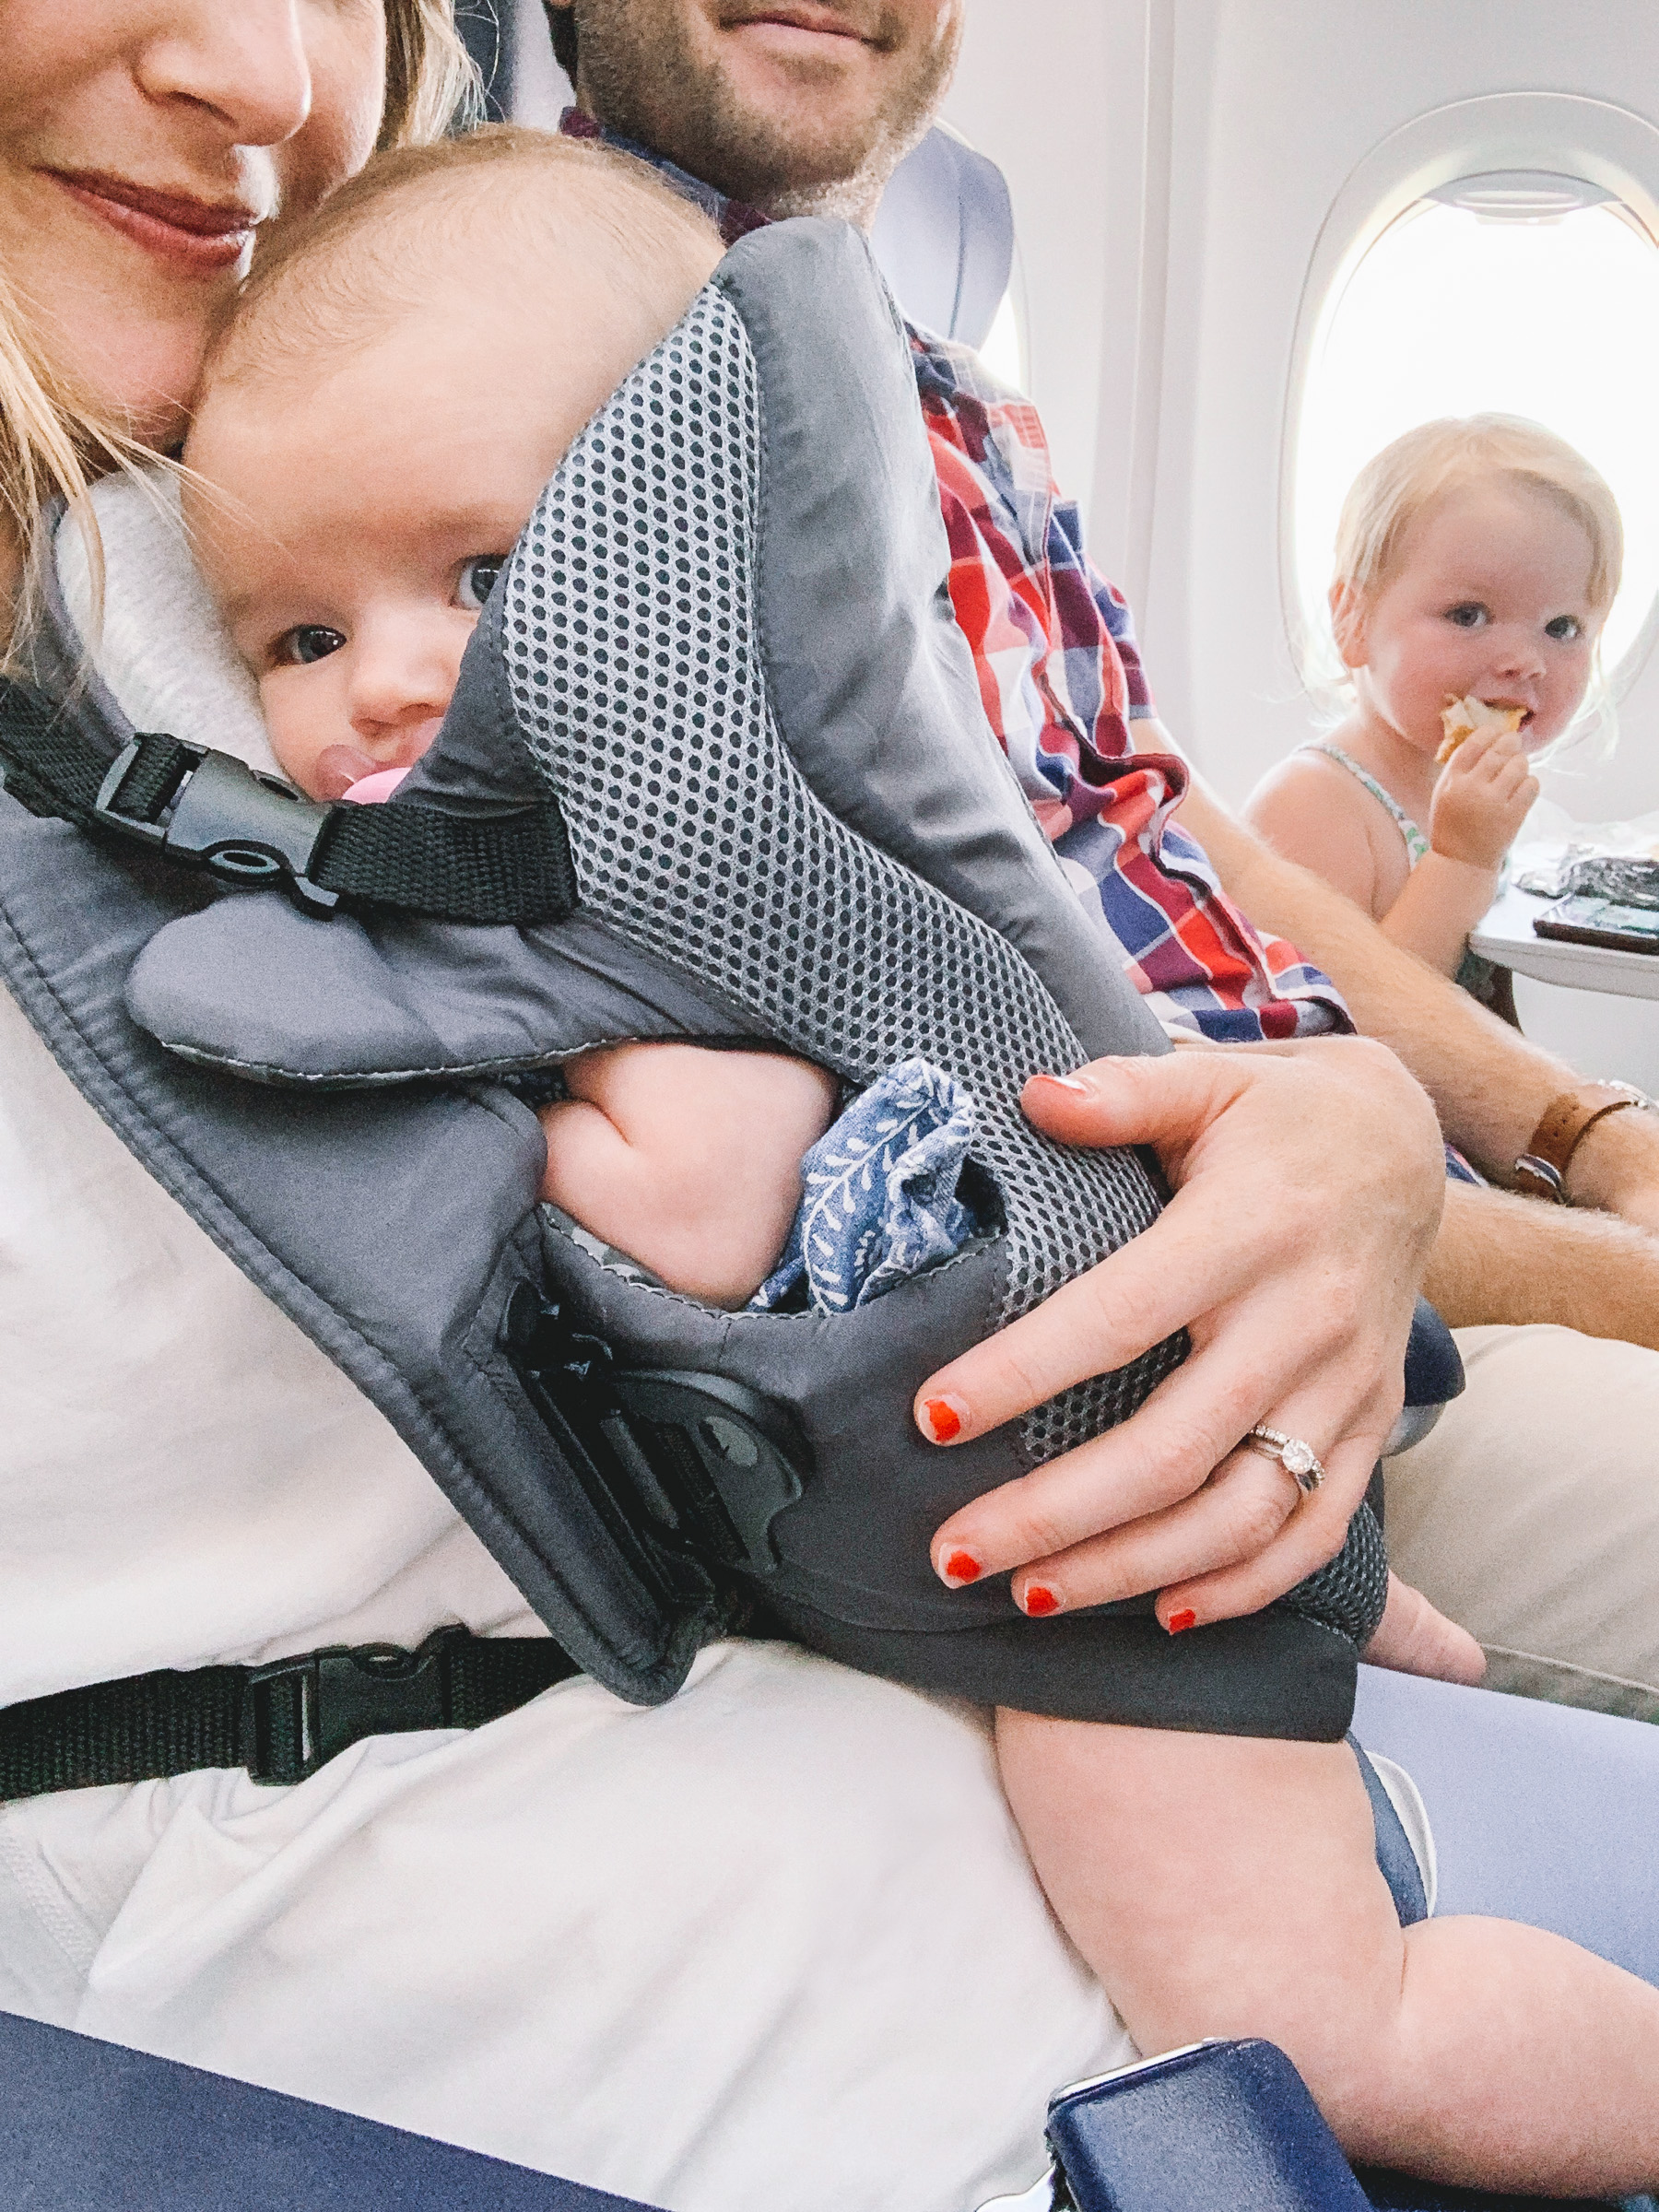 Our First Flight with Two Kids